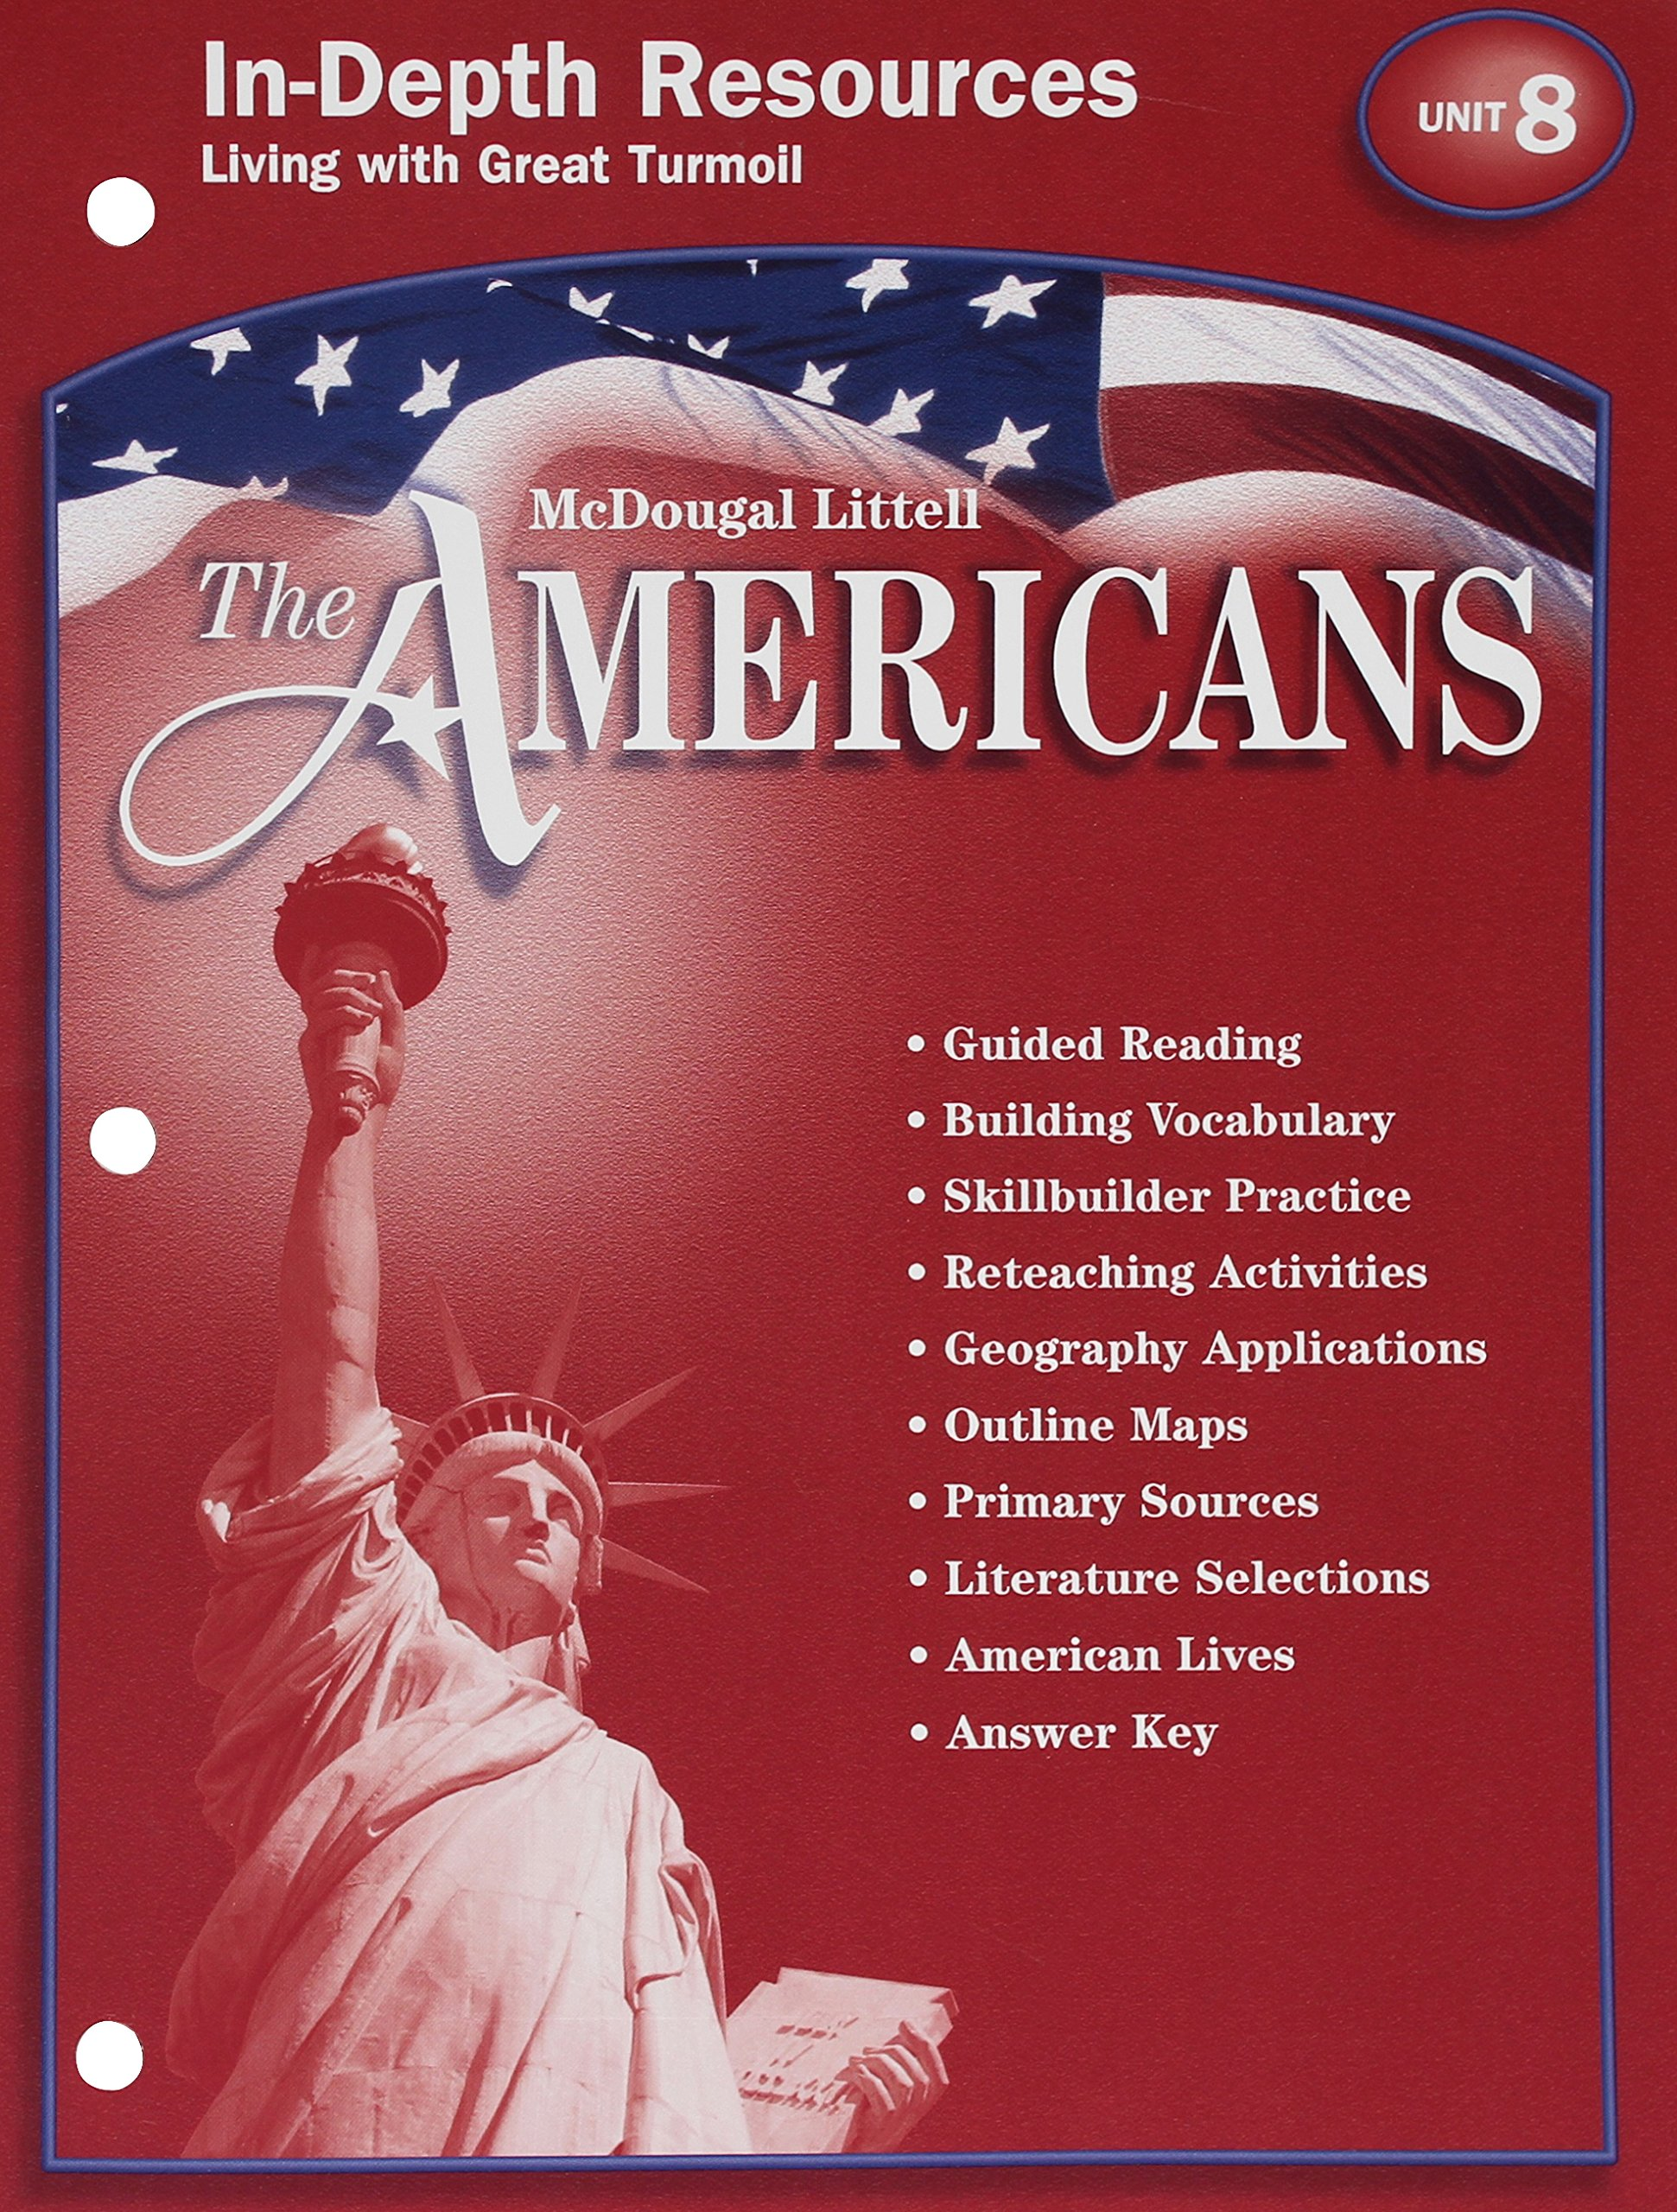 Amazon com: McDougal Littell The Americans: In-Depth